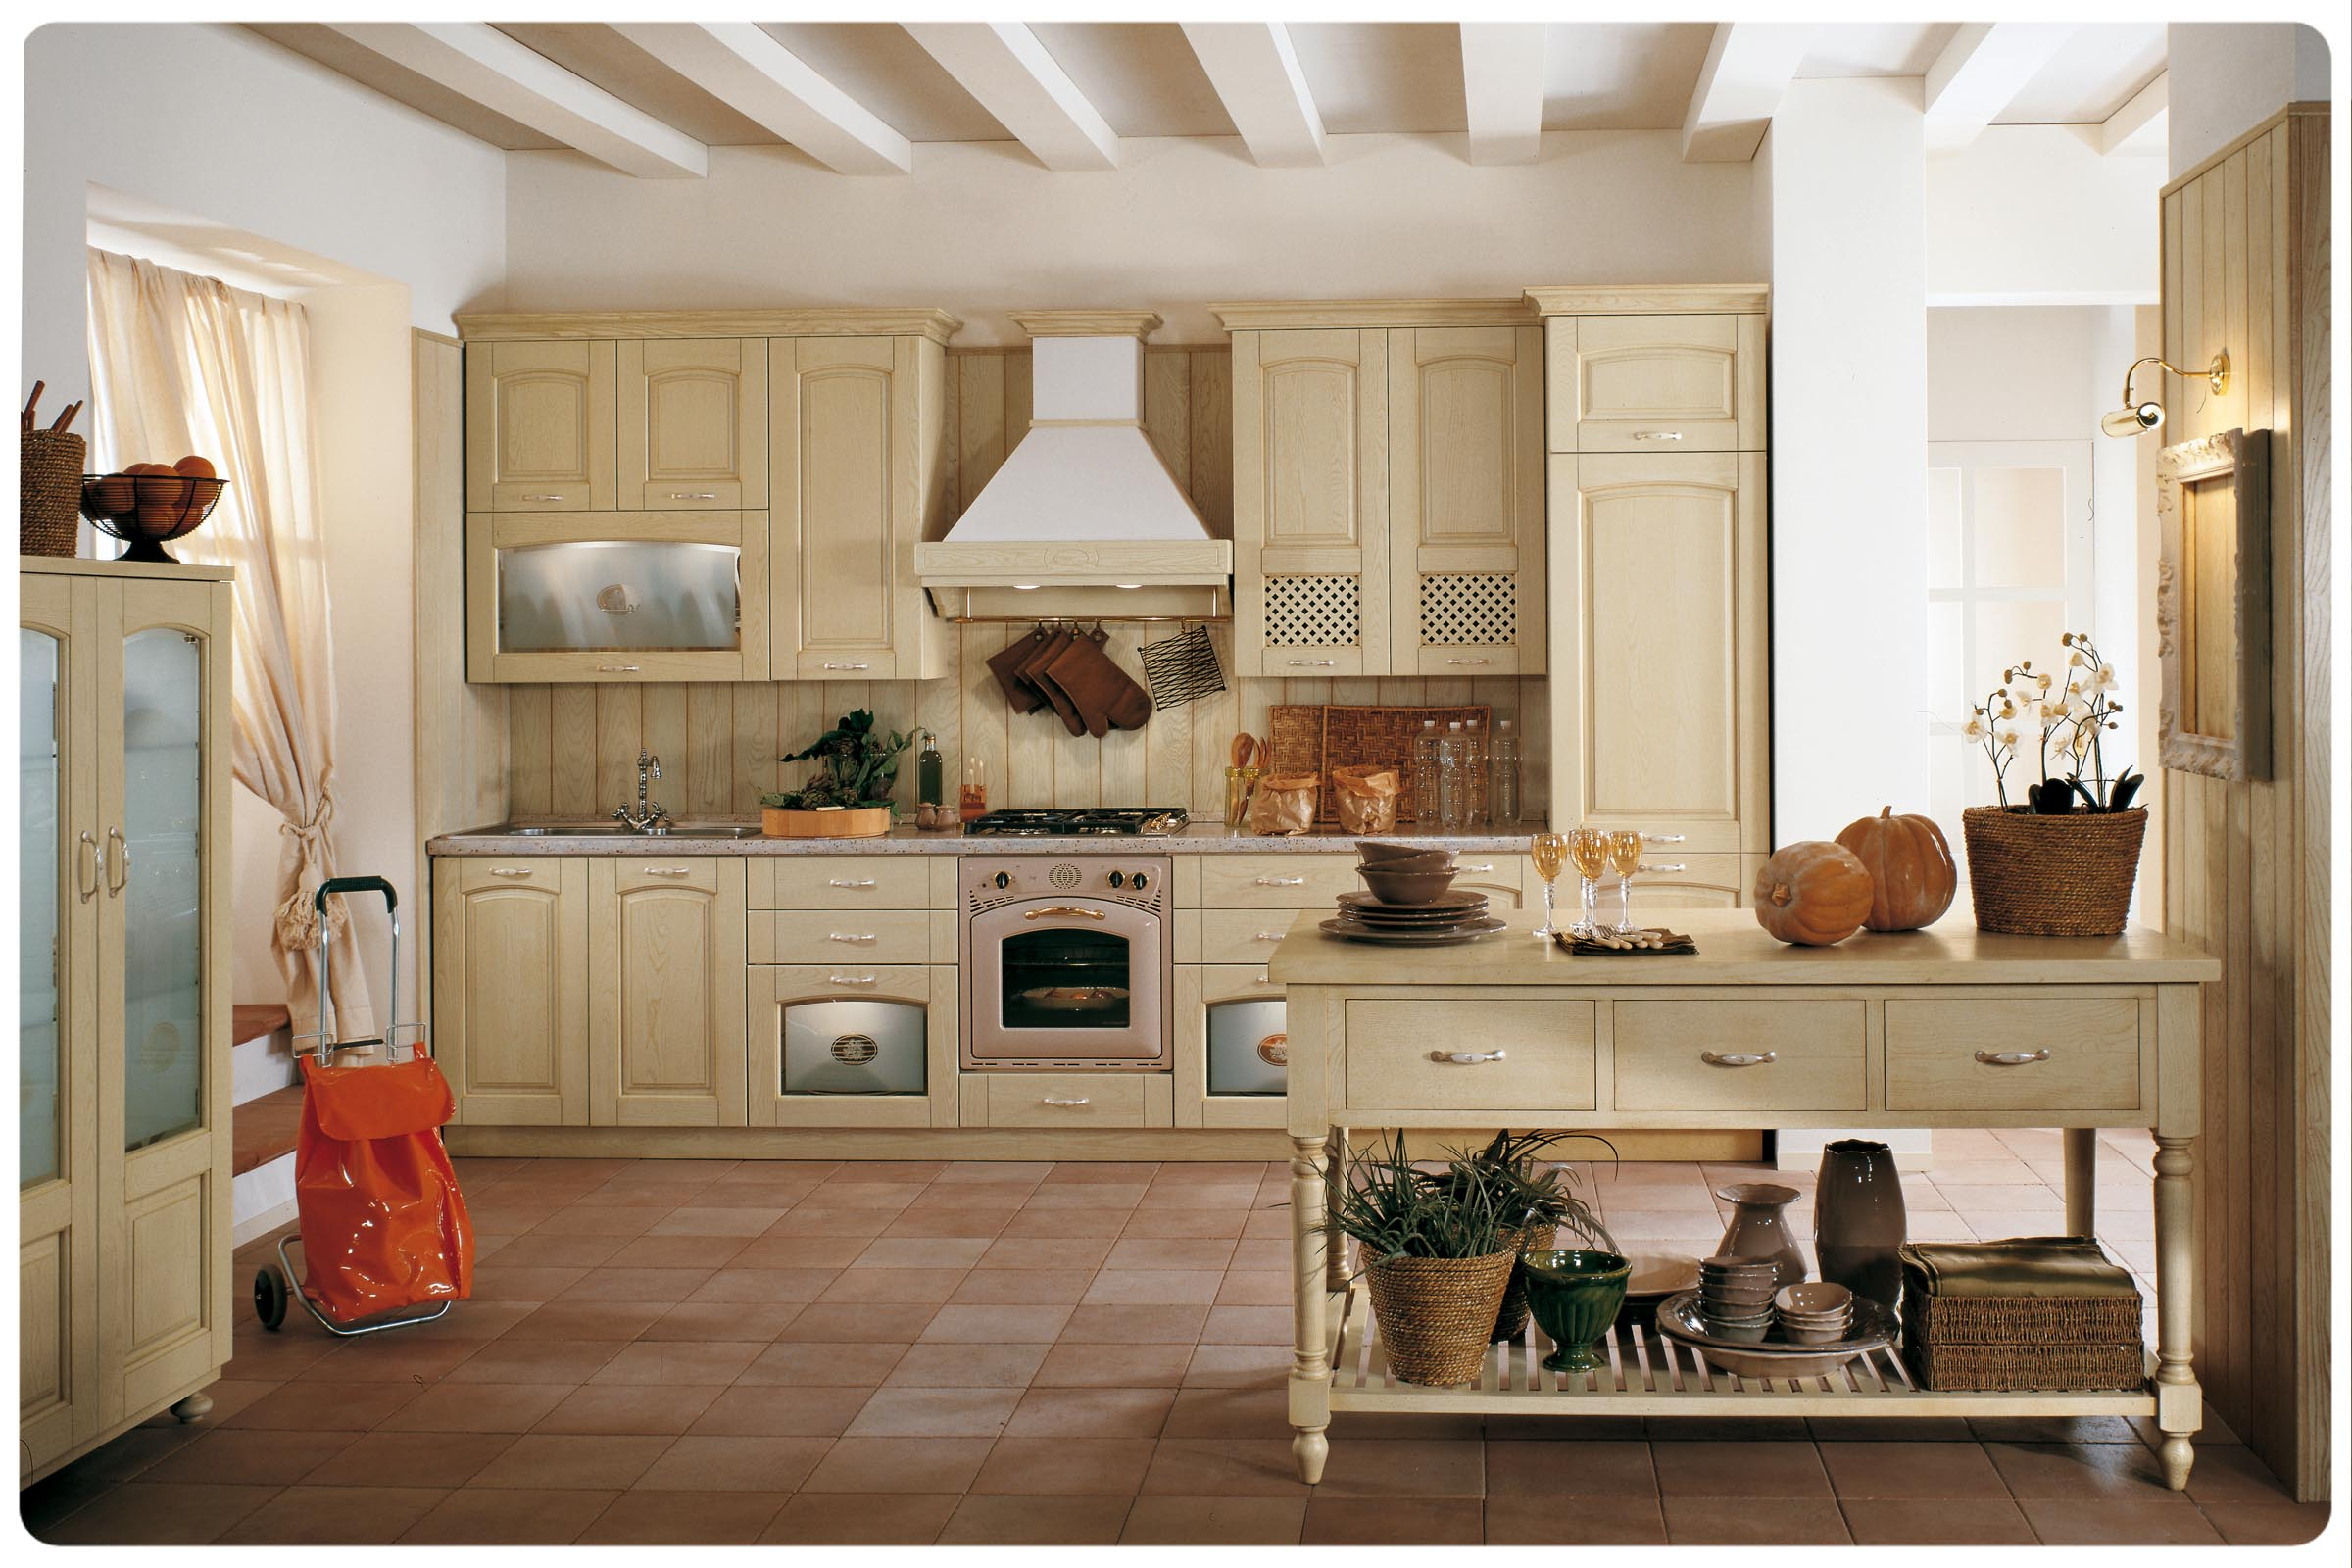 www.lops.it/images/products/cucine/cucina-classica...